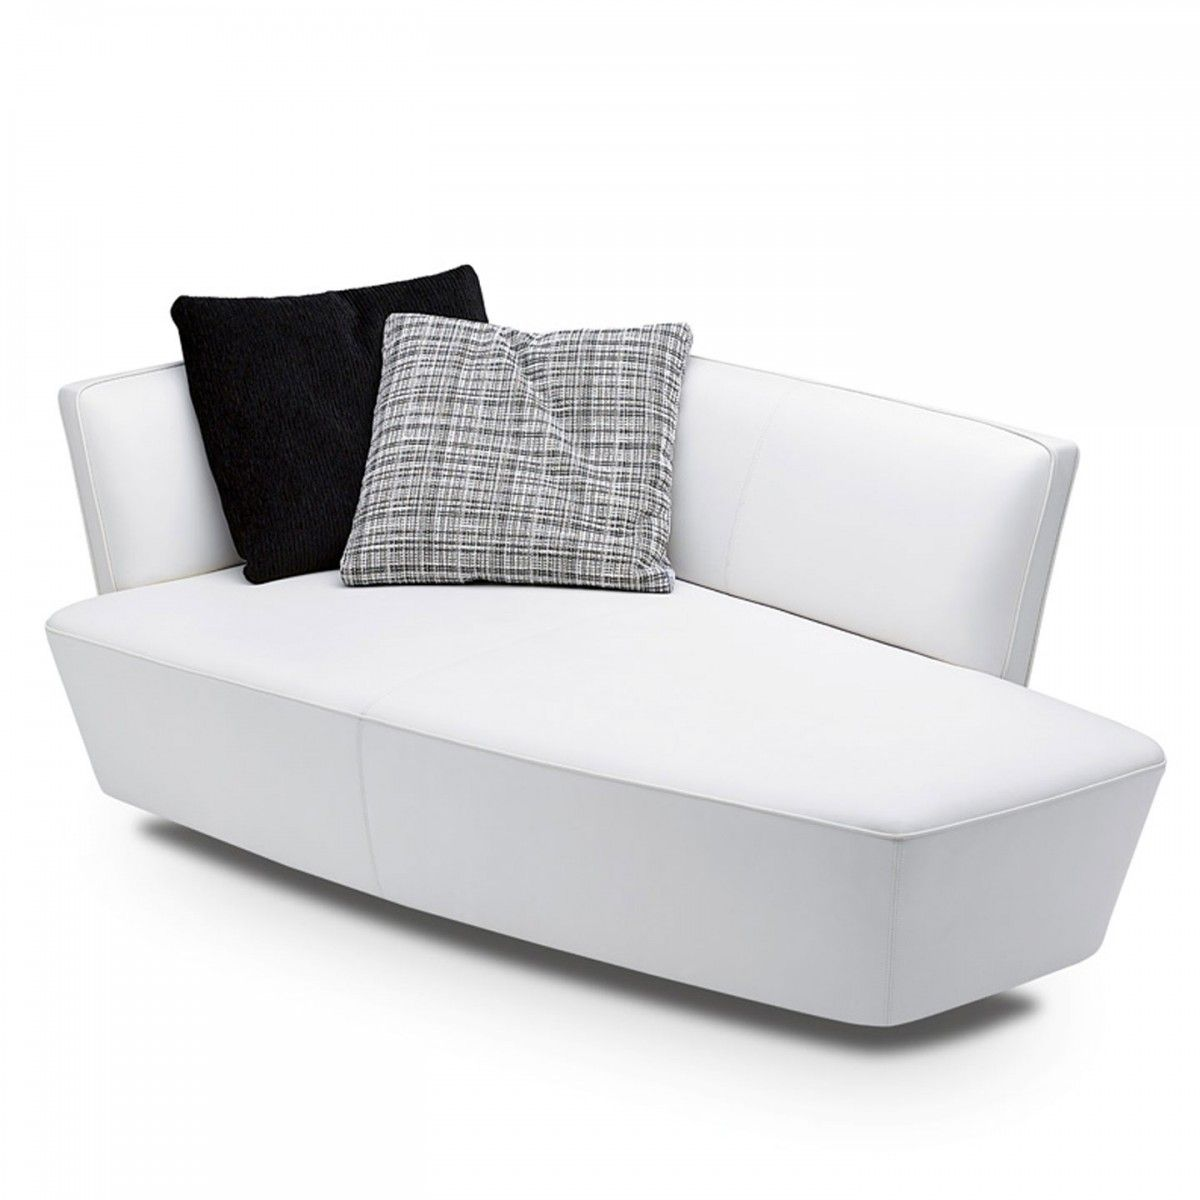 Recamiere Modern Drift Recamiere Sofa By Eoos For Walter Knoll Lounge Area